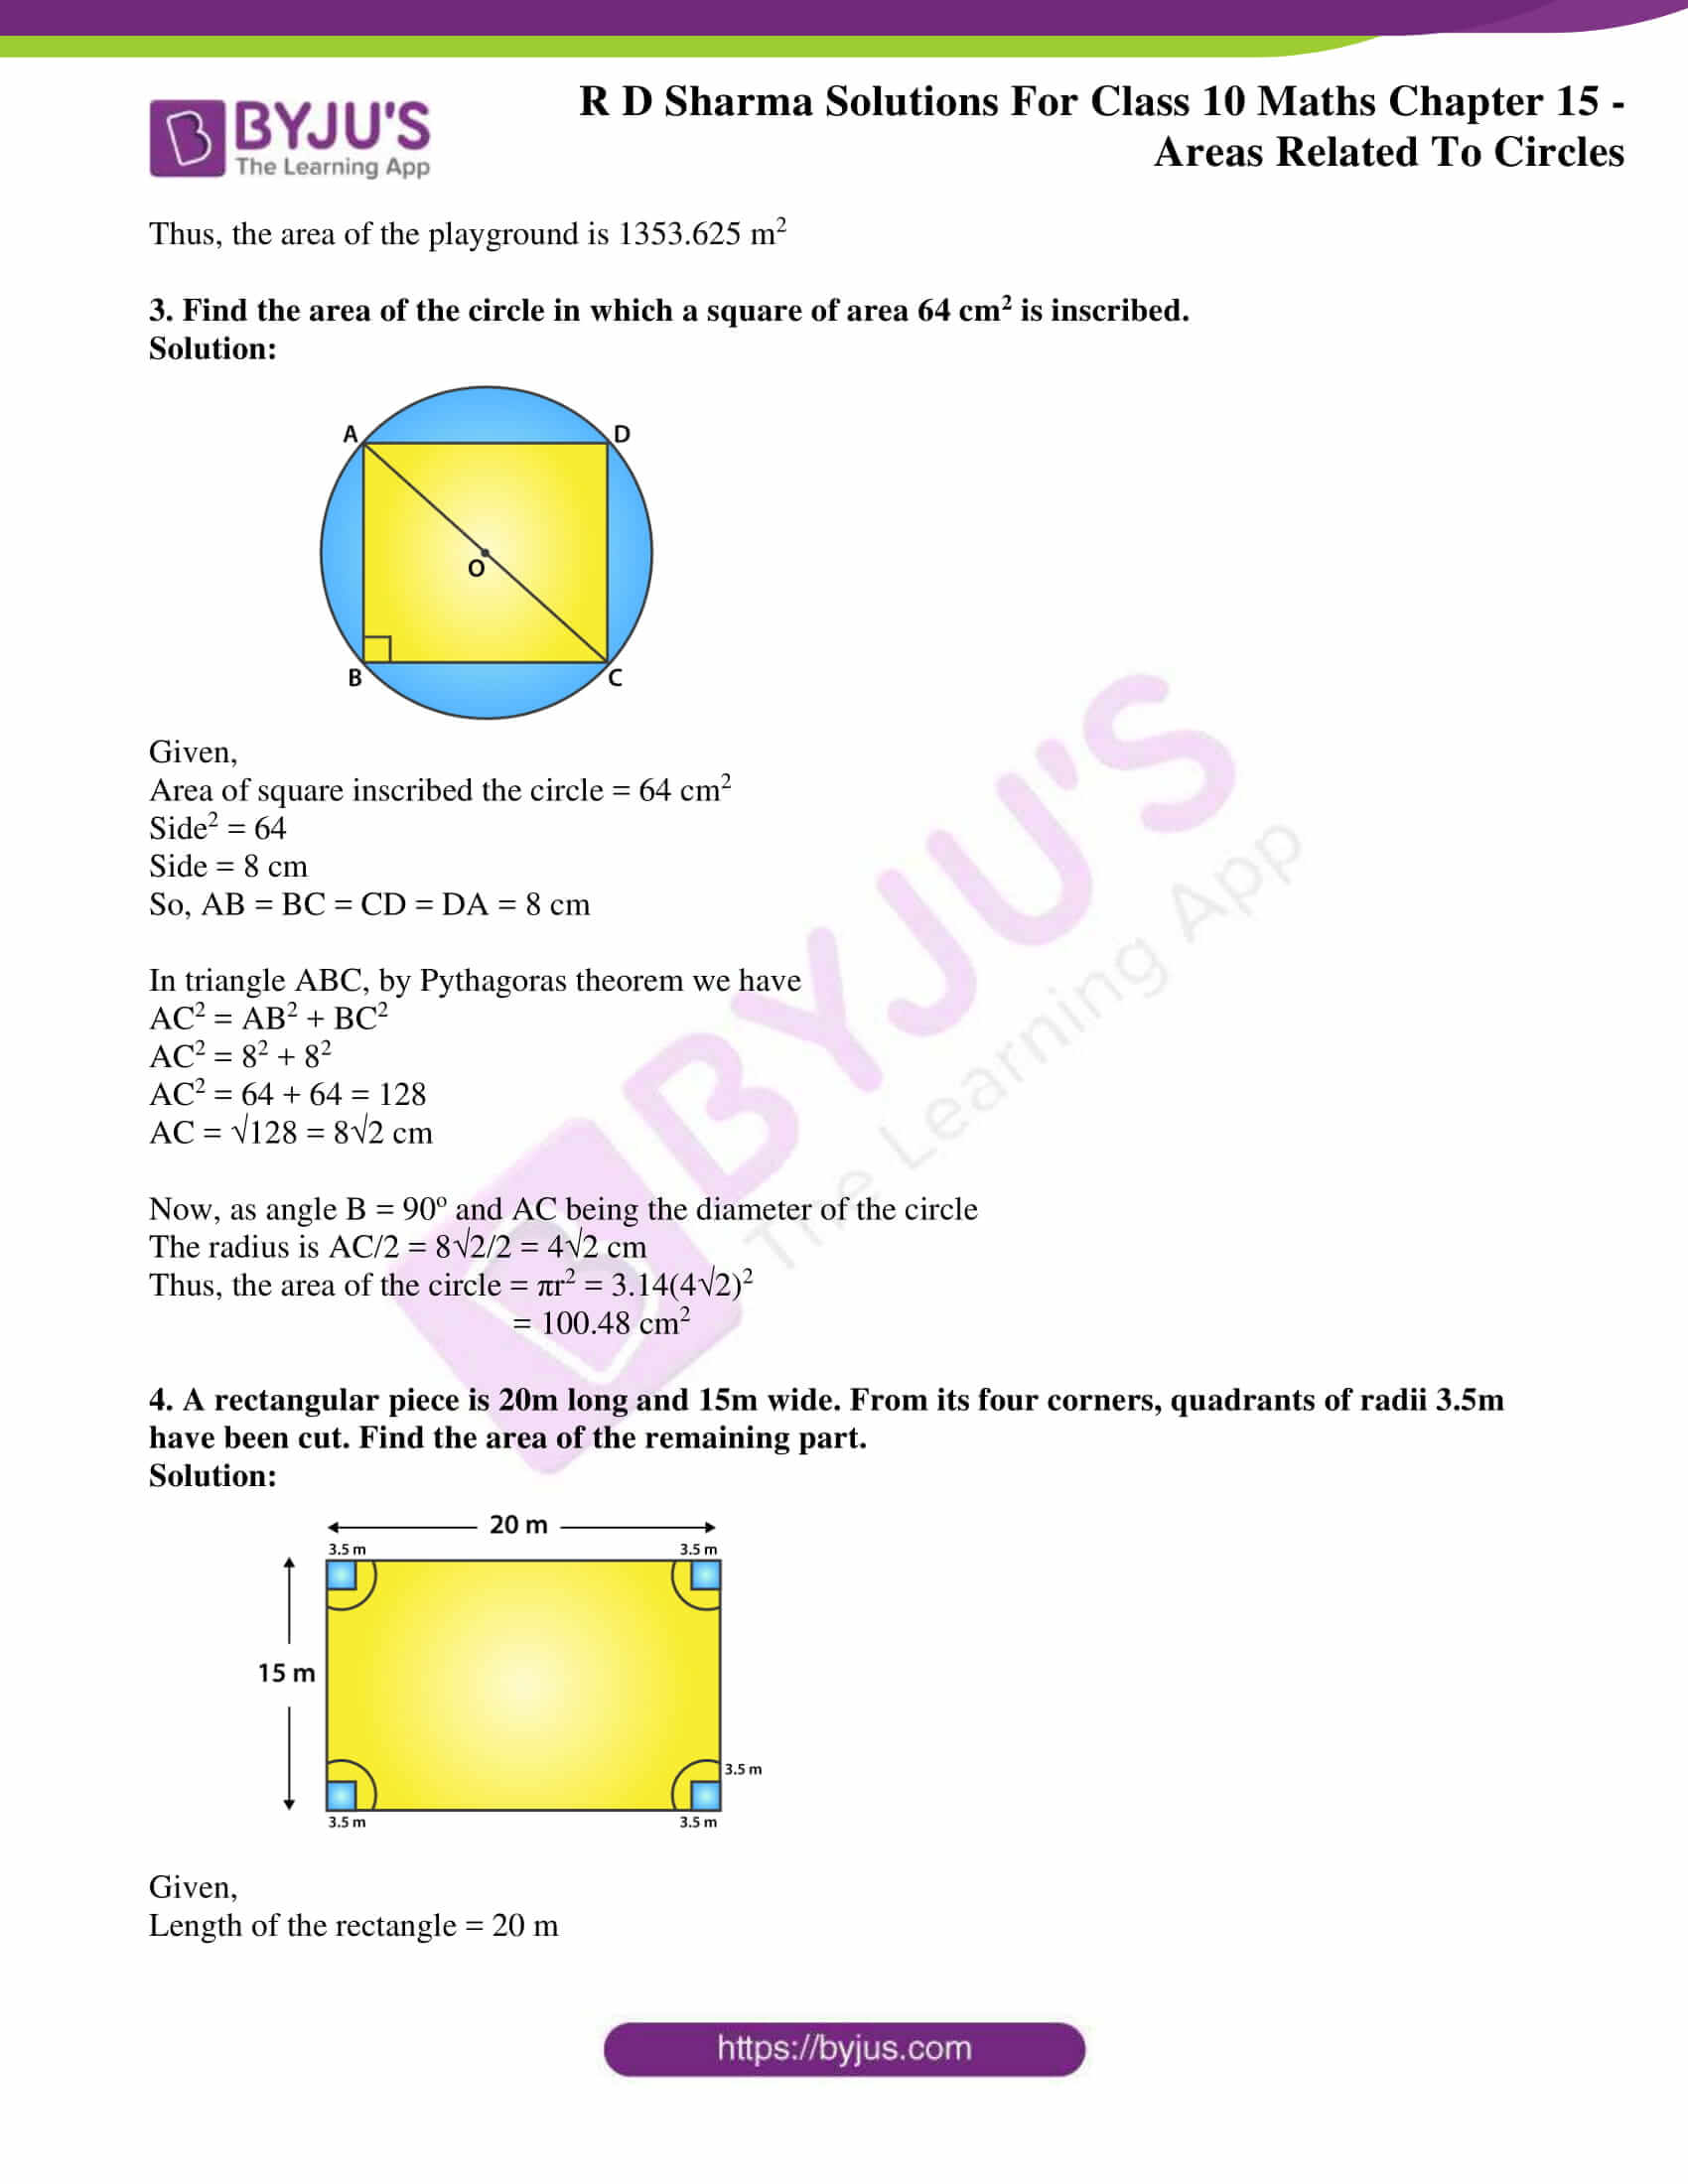 rd sharma solutions class 10 chapter 15 exercise 4